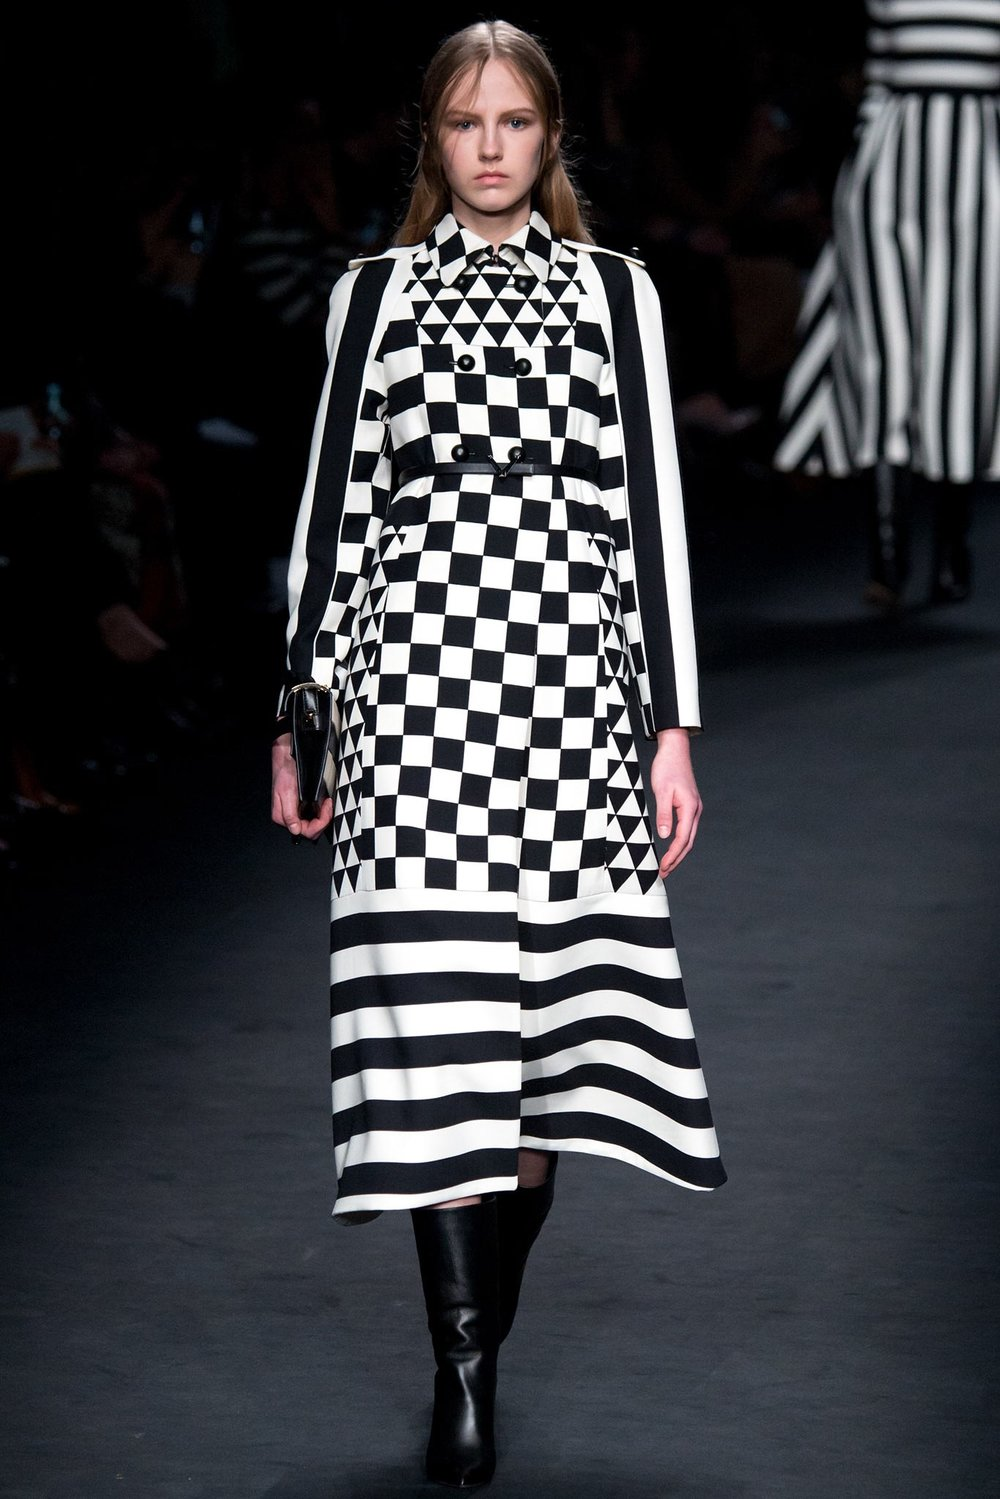 A Valentino black and white trench coat on the runway.